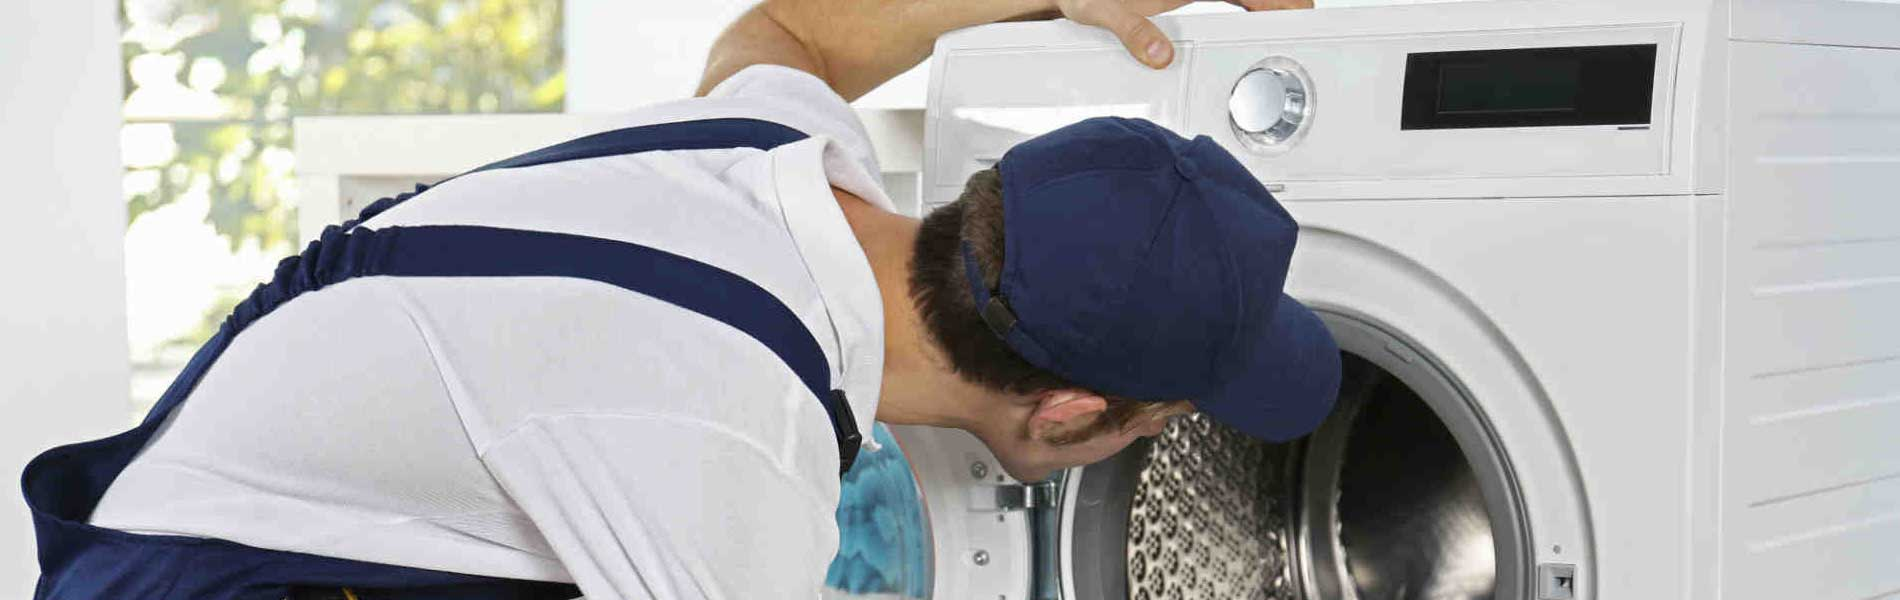 Godrej Washing Machine Mechanic in s.kolathur